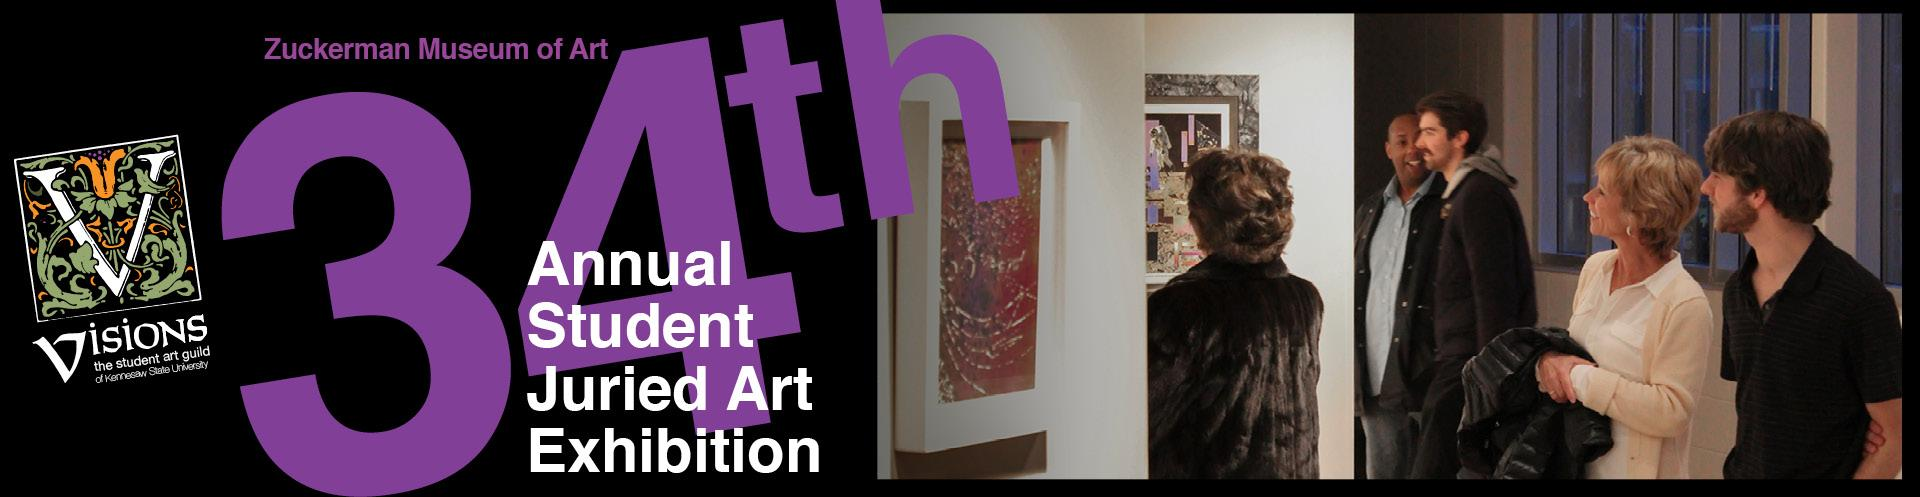 34th Annual Student Juried Art Exhibition